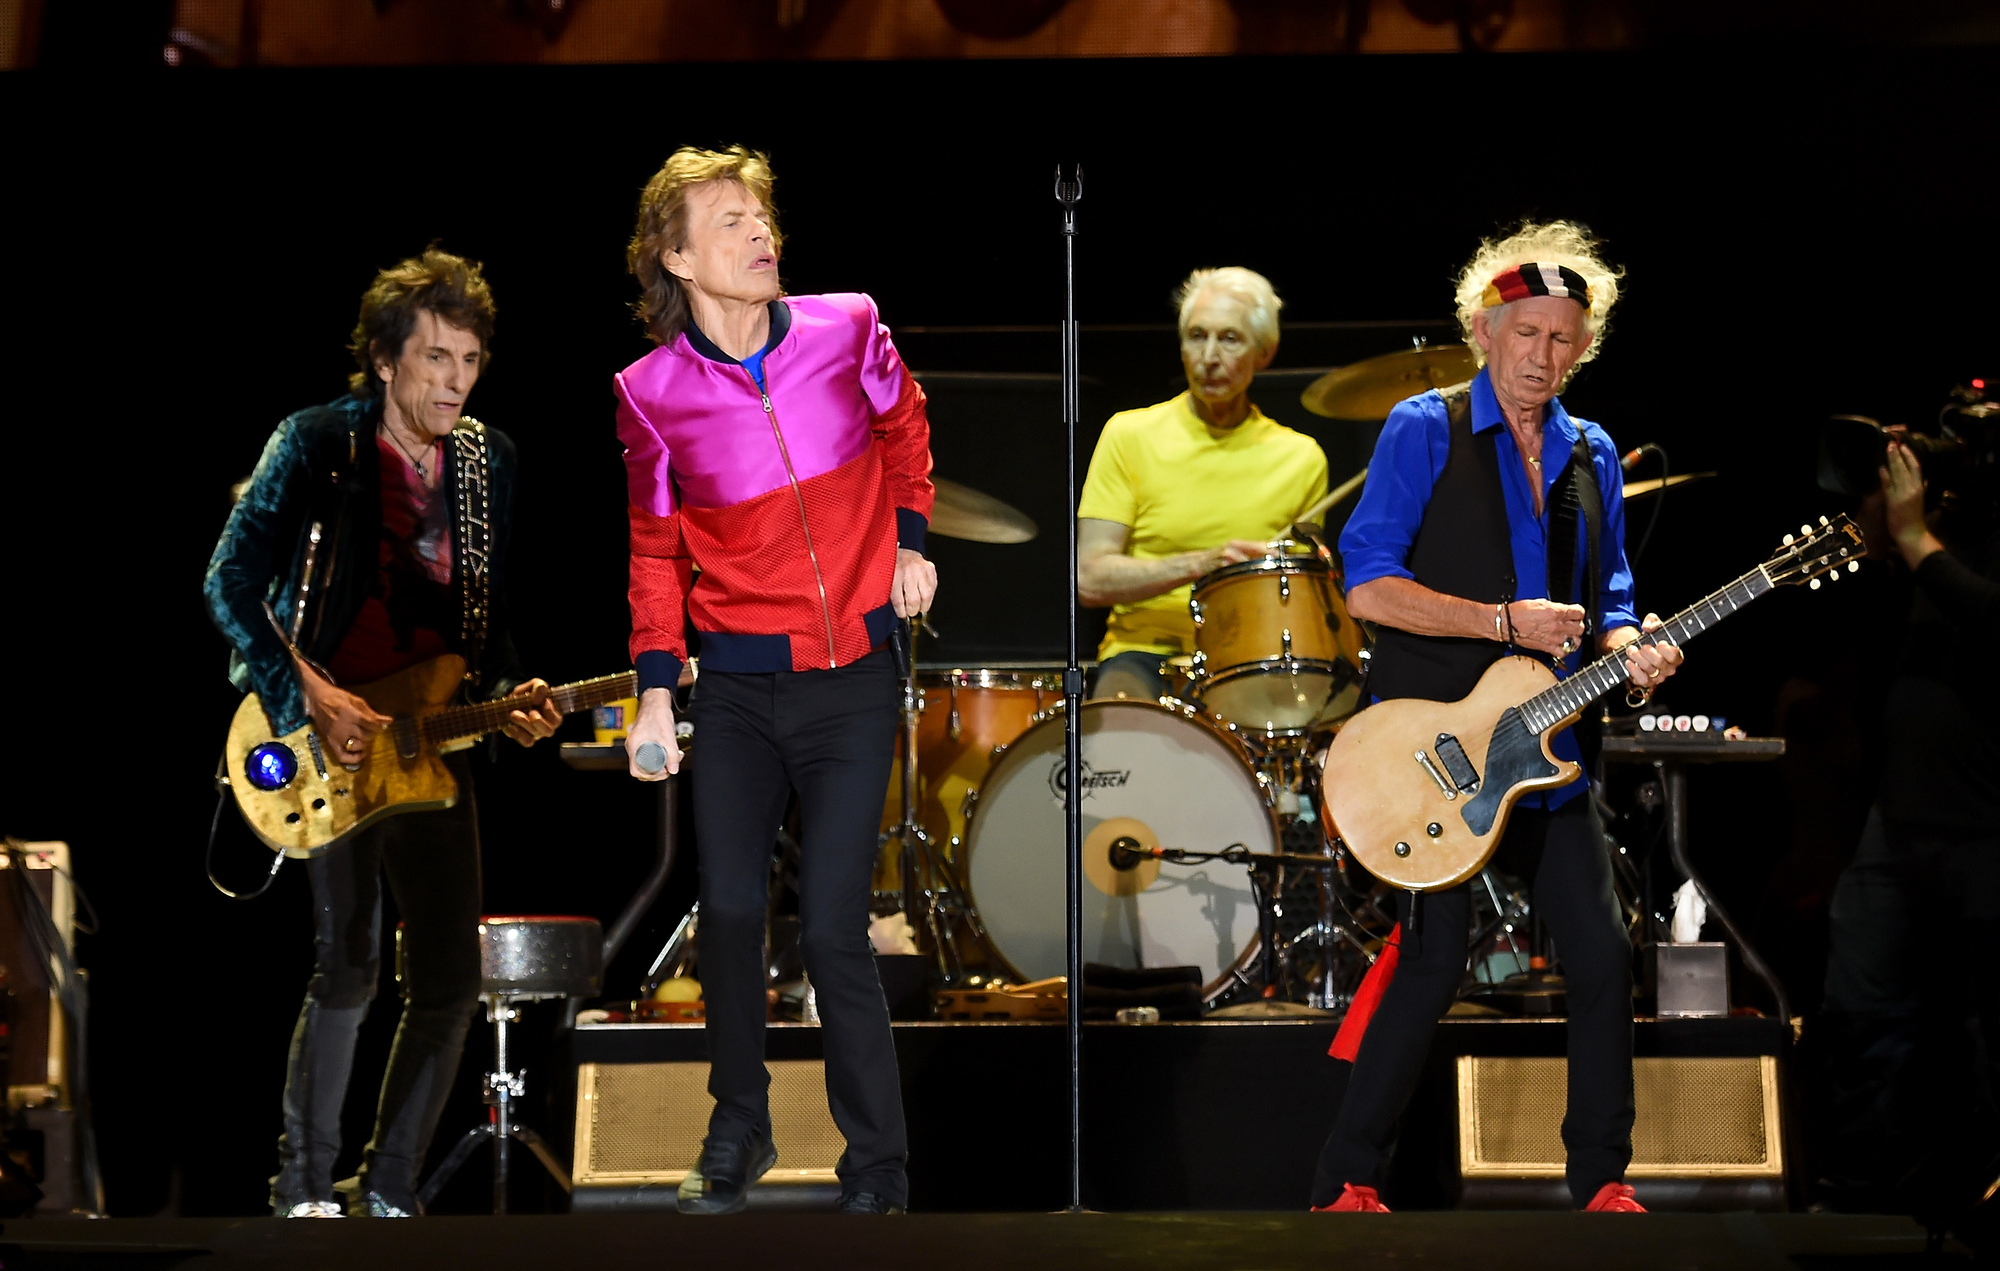 Rolling Stones forced to postpone tour due to Mick Jagger